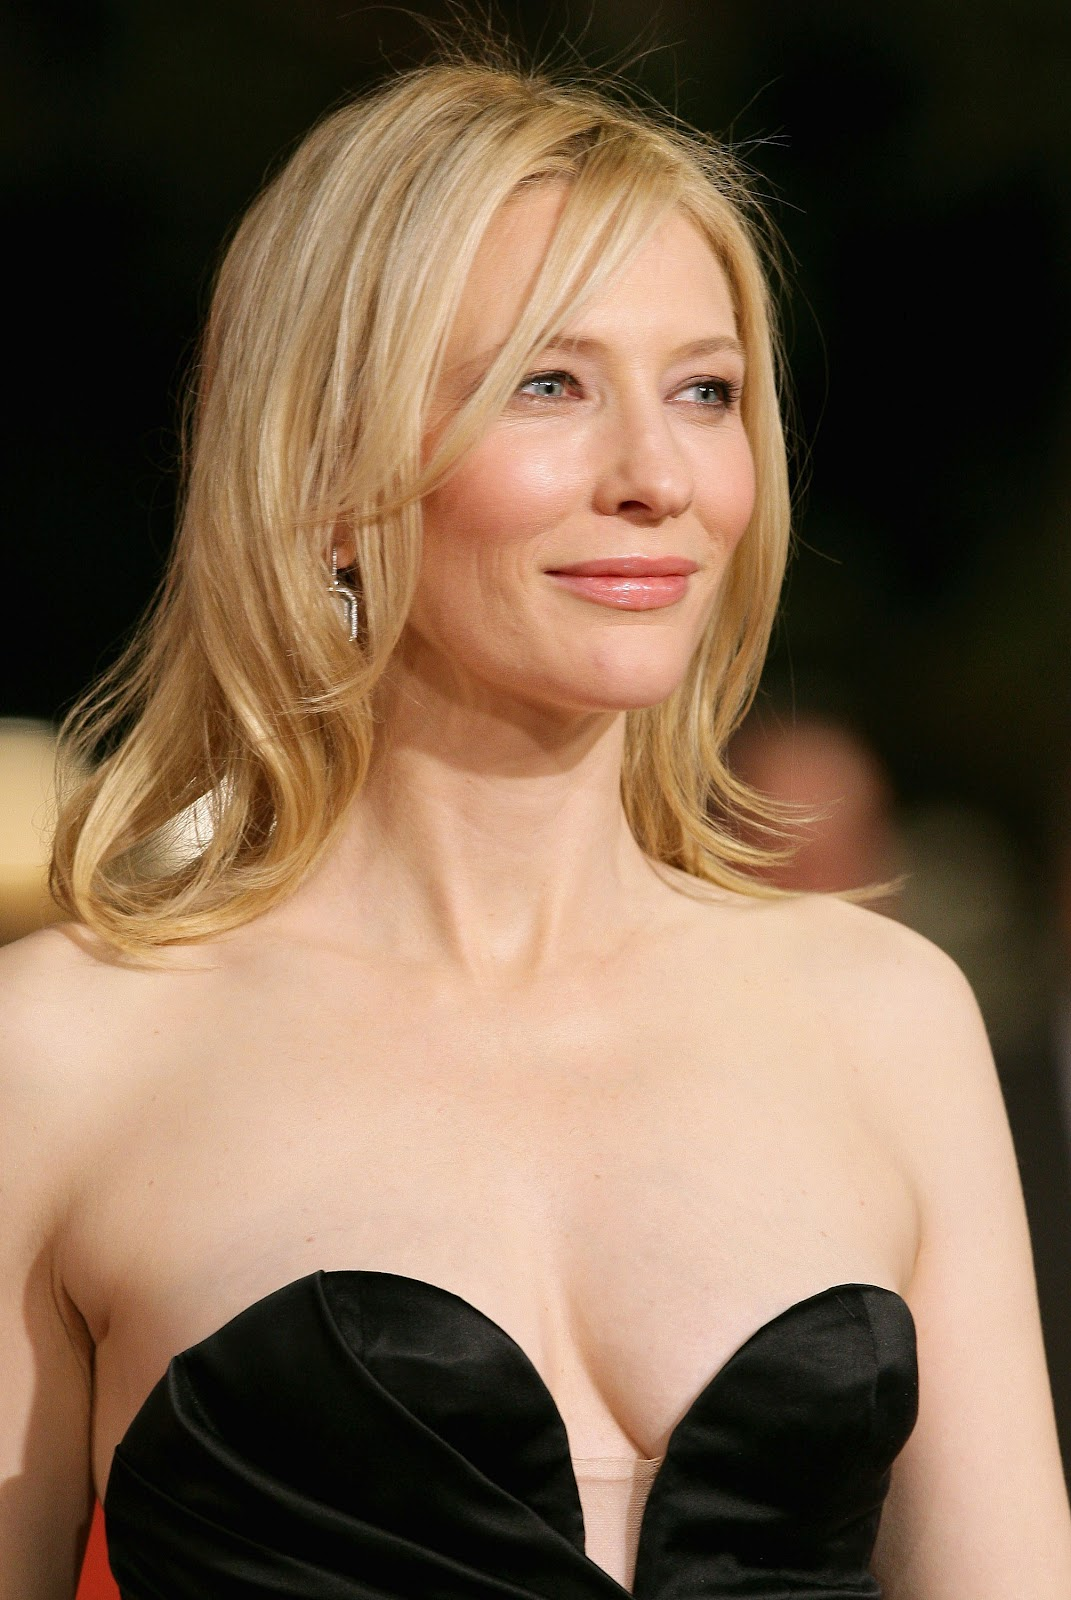 http://2.bp.blogspot.com/-nYOVx1-rvUE/T-eKc9WNkrI/AAAAAAAAB38/_Dc2TjaBHCY/s1600/Cate+Blanchett+Weight+And+Height.jpg